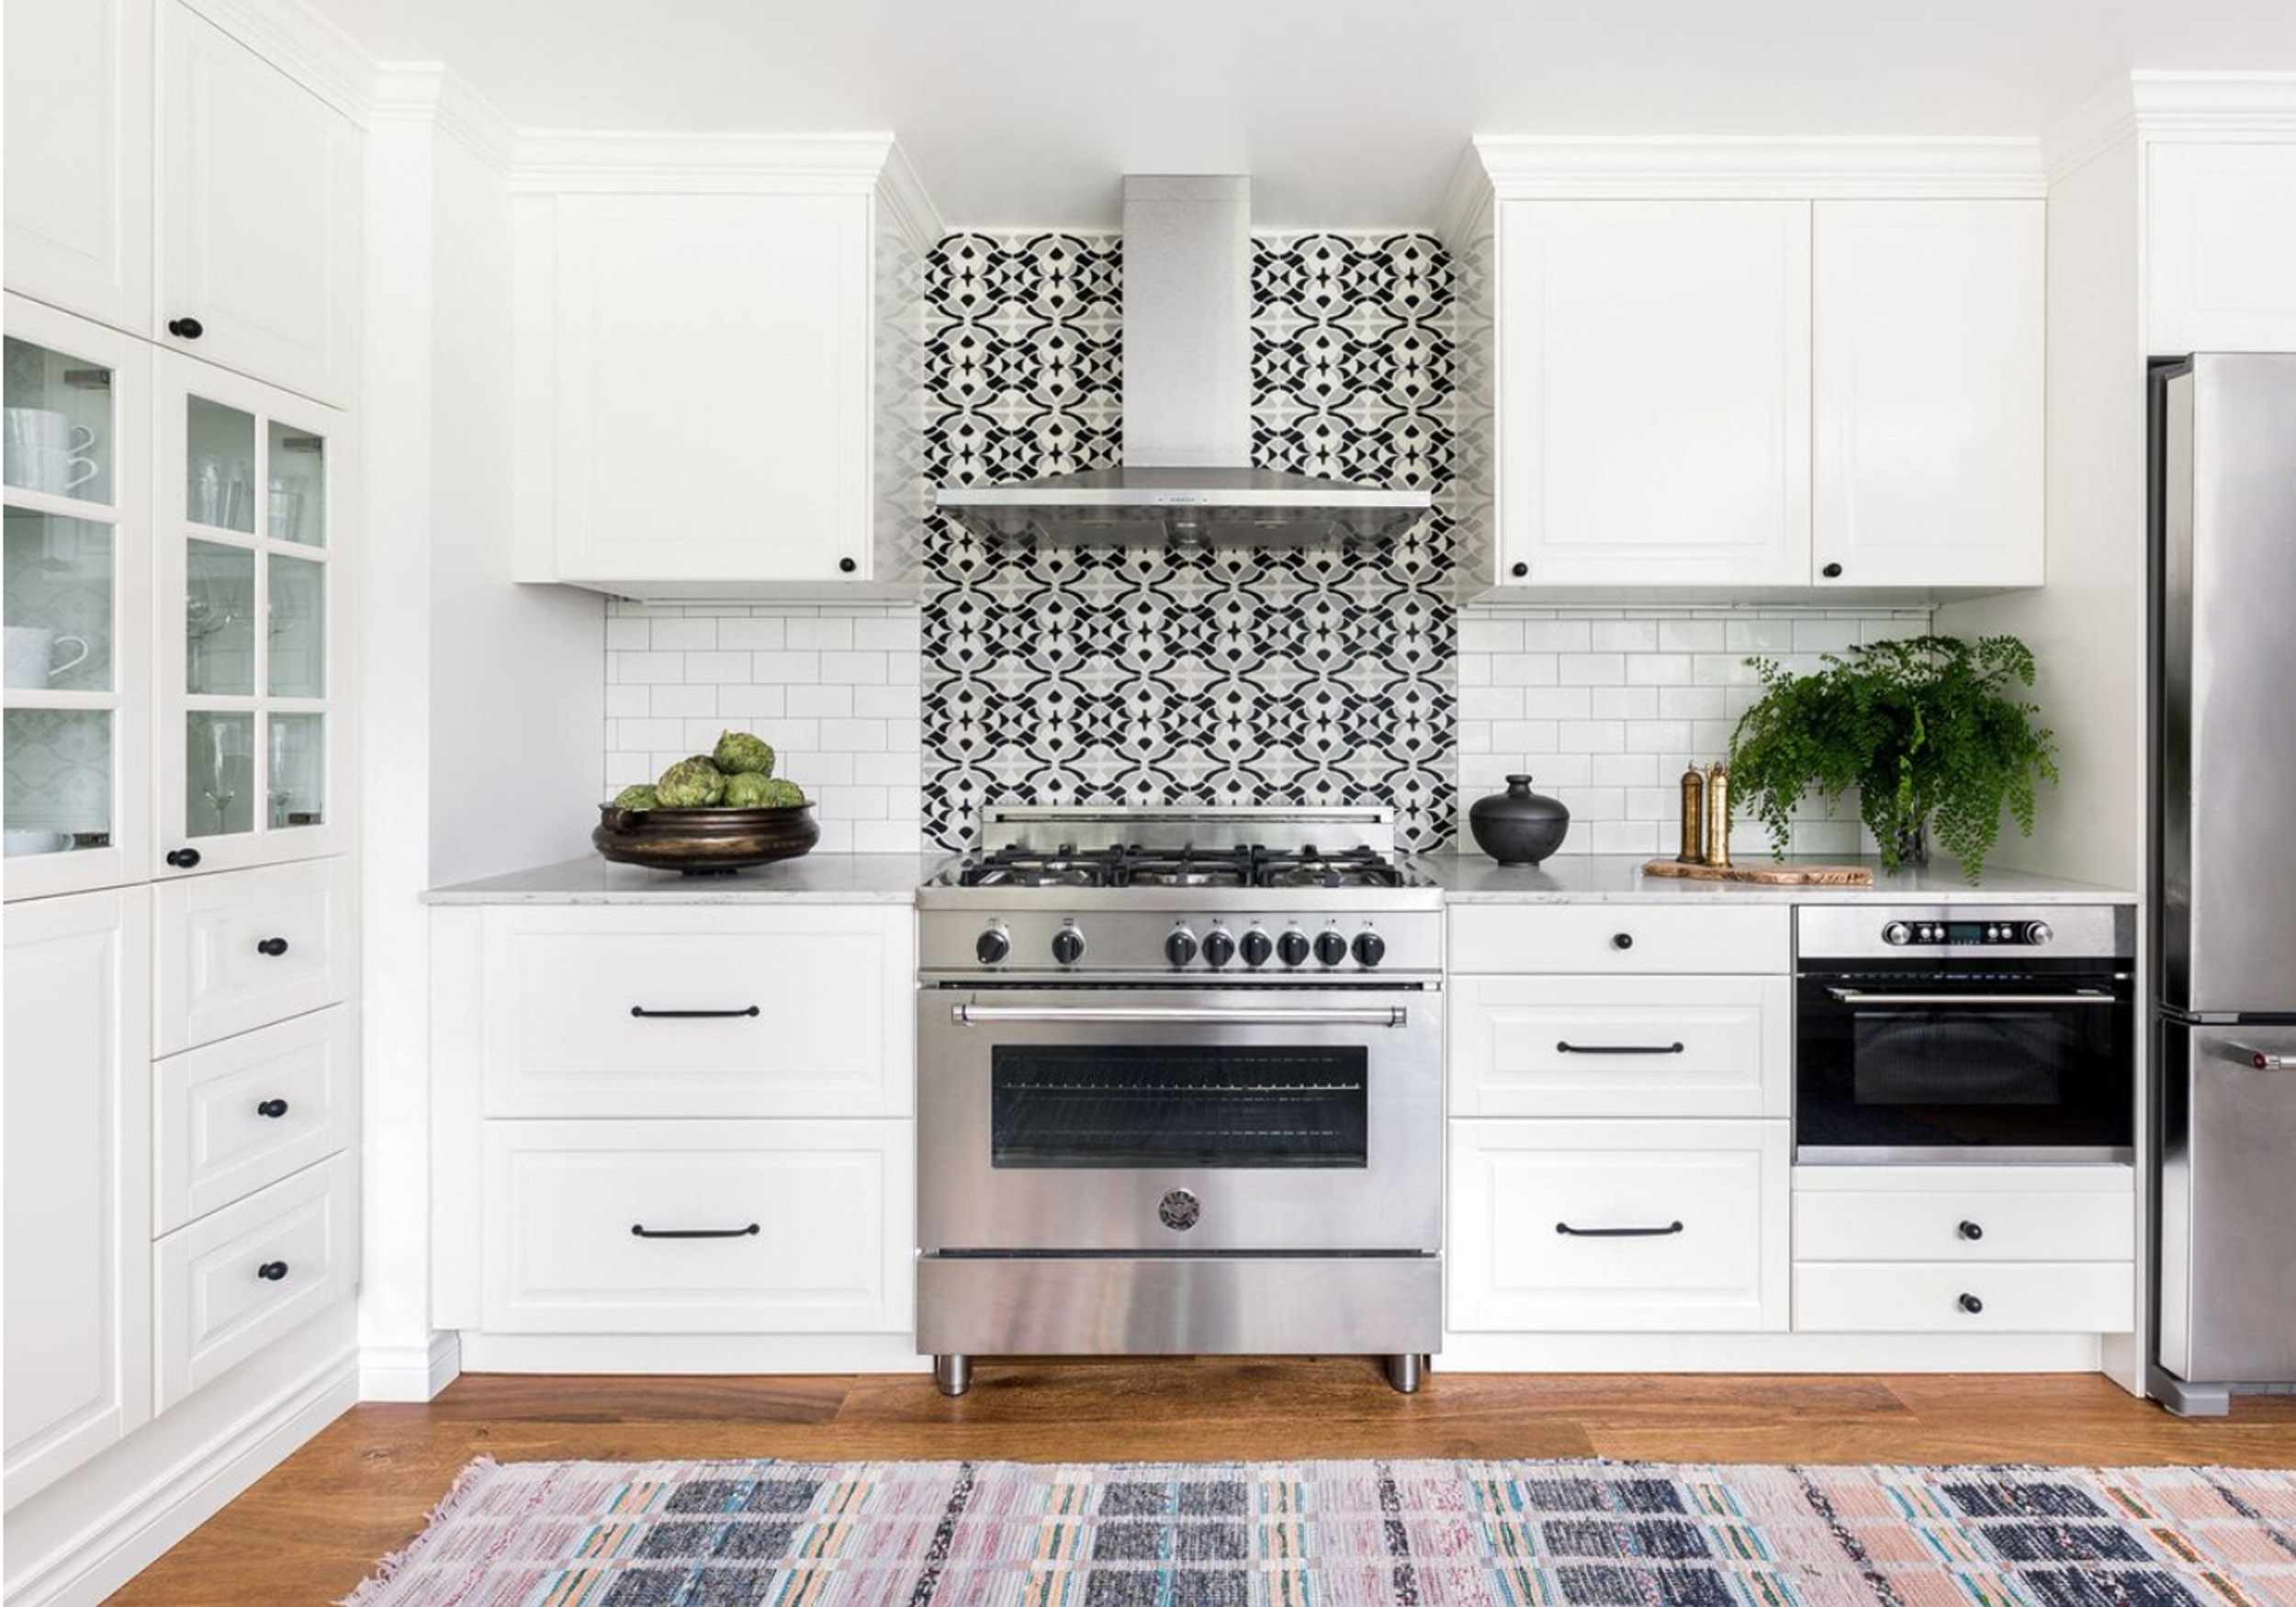 PRIVATE RESIDENCE-KITCHEN     BEQUIA  CEMENT TILE SEATTLE, WASHINGTON